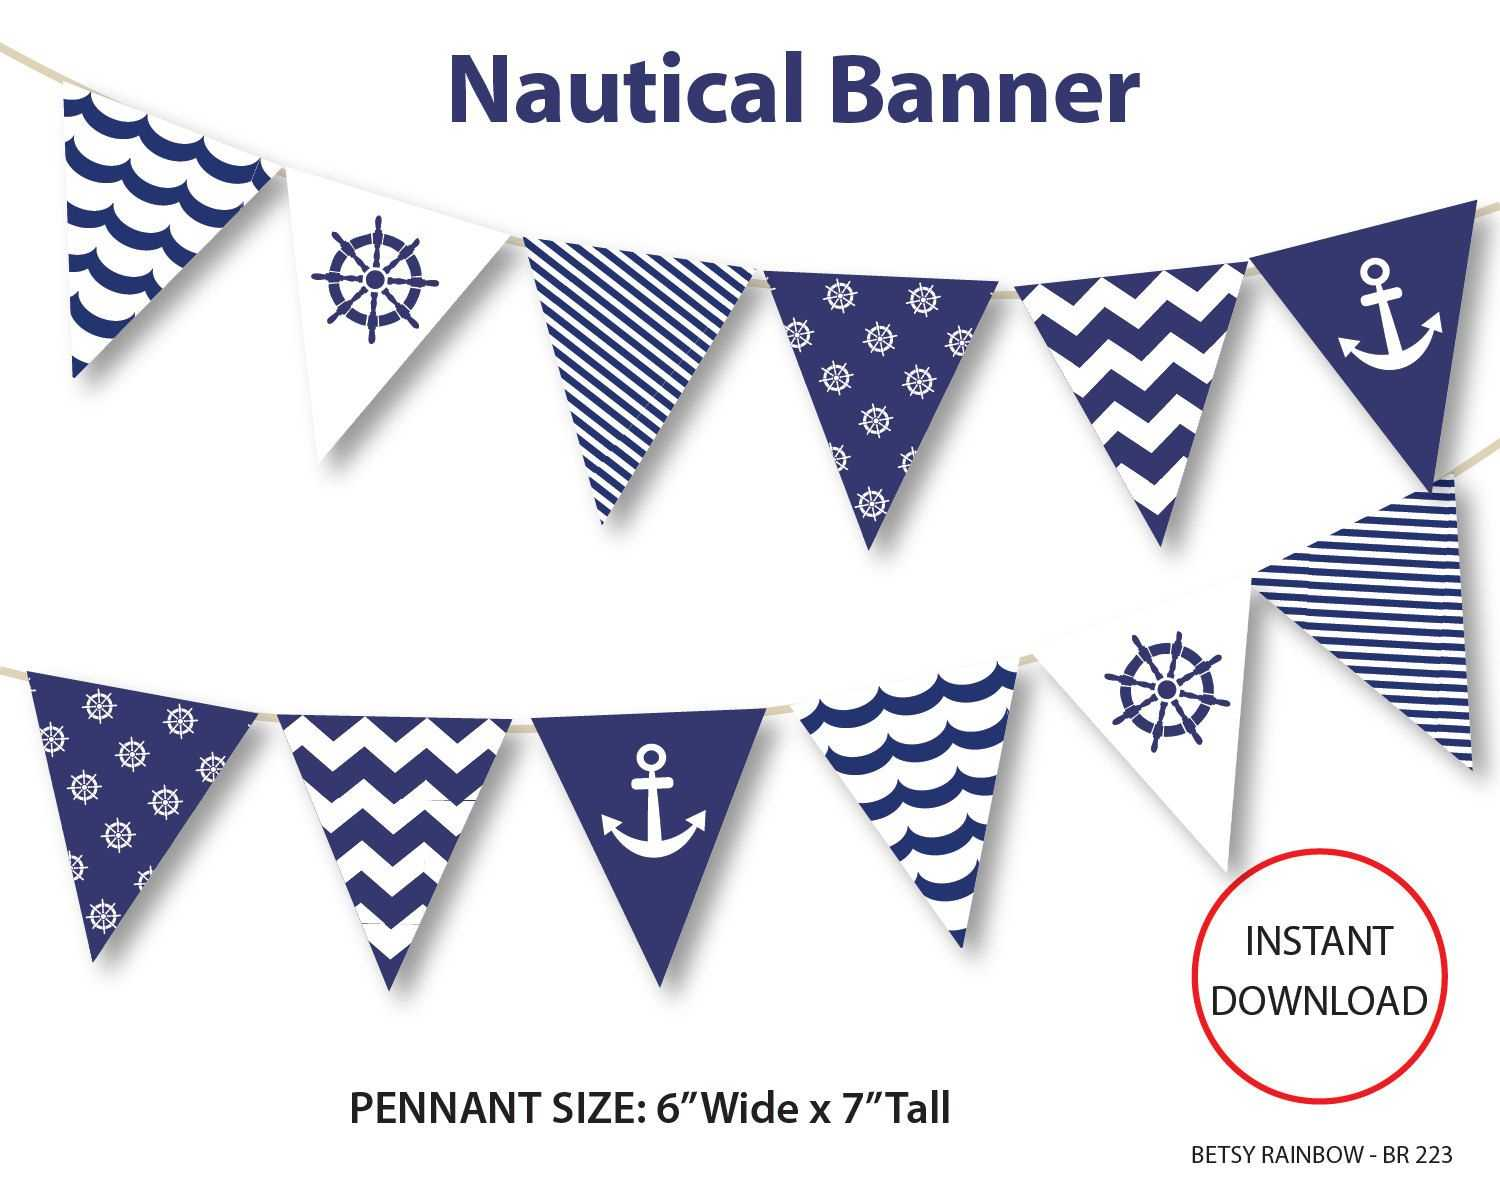 Nautical Banner, Printable Banner, Nautical, Diy Party, Navy Within Nautical Banner Template